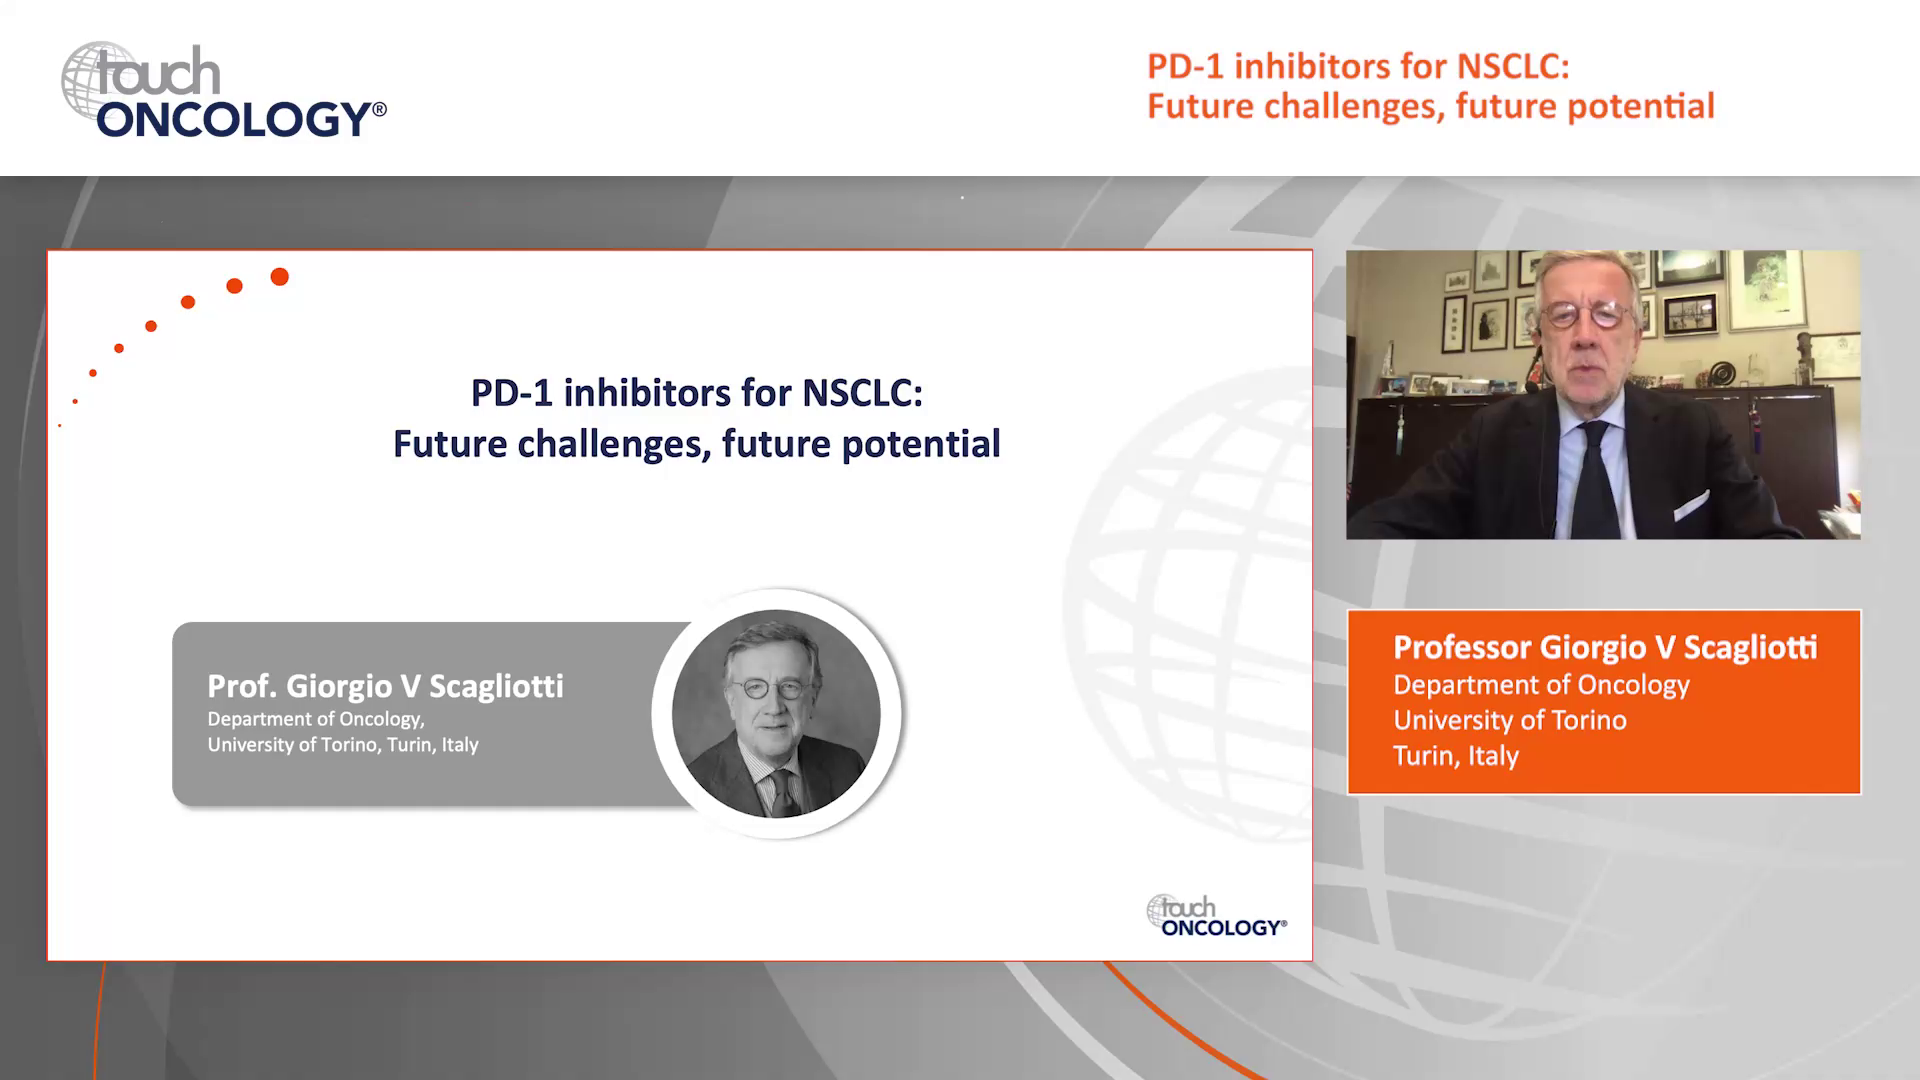 PD-1 inhibitors for NSCLC: Future challenges, future potential